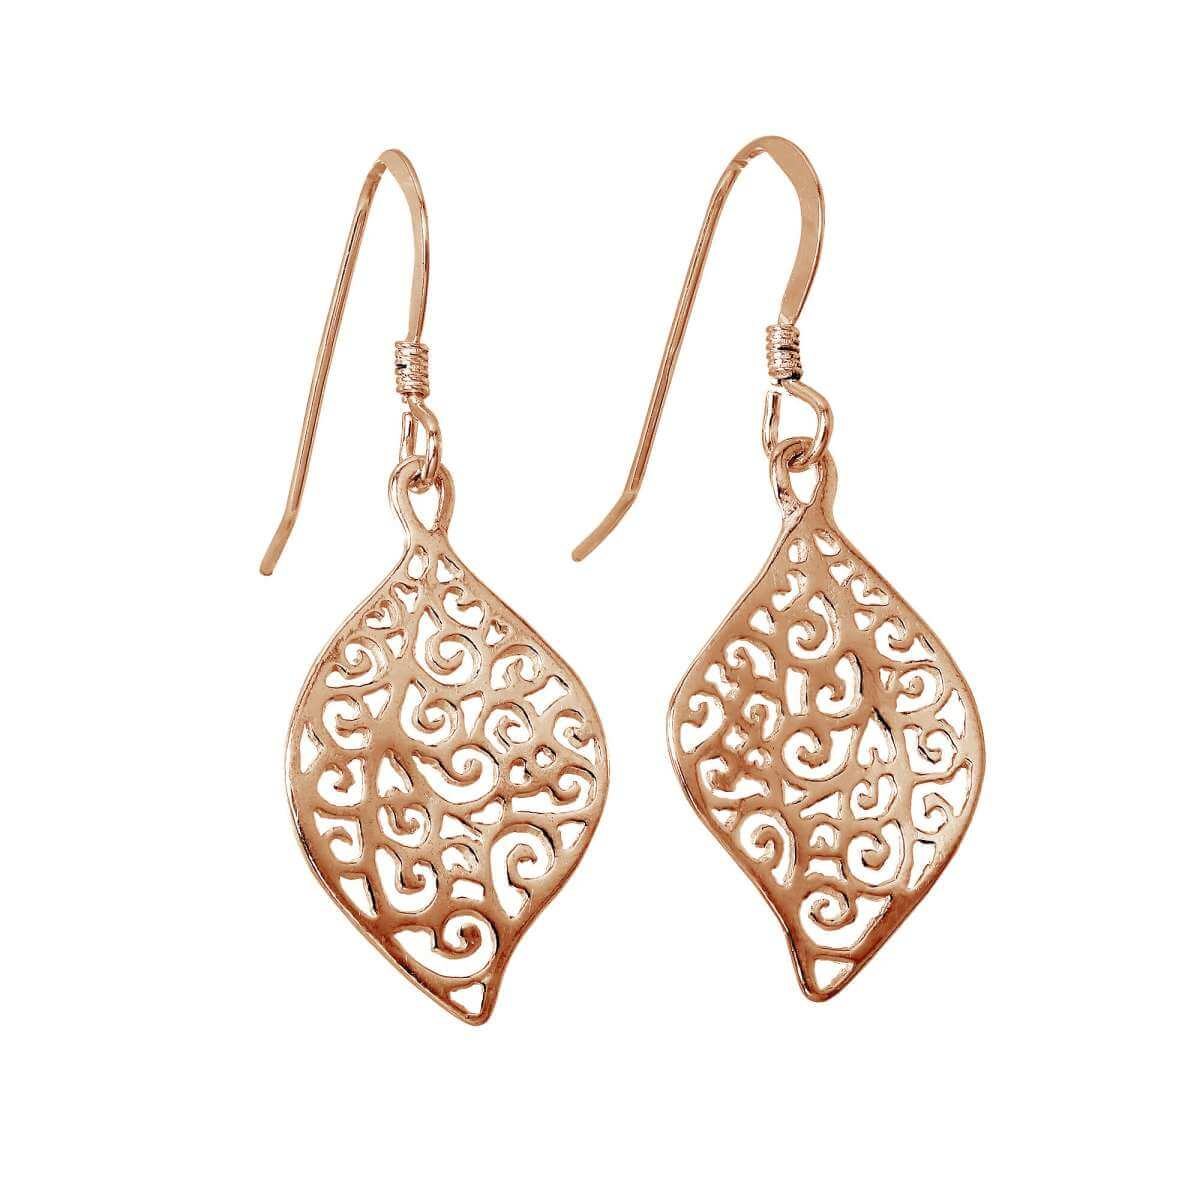 Rose Gold Plated Sterling Silver Filigree Leaf Drop Earrings